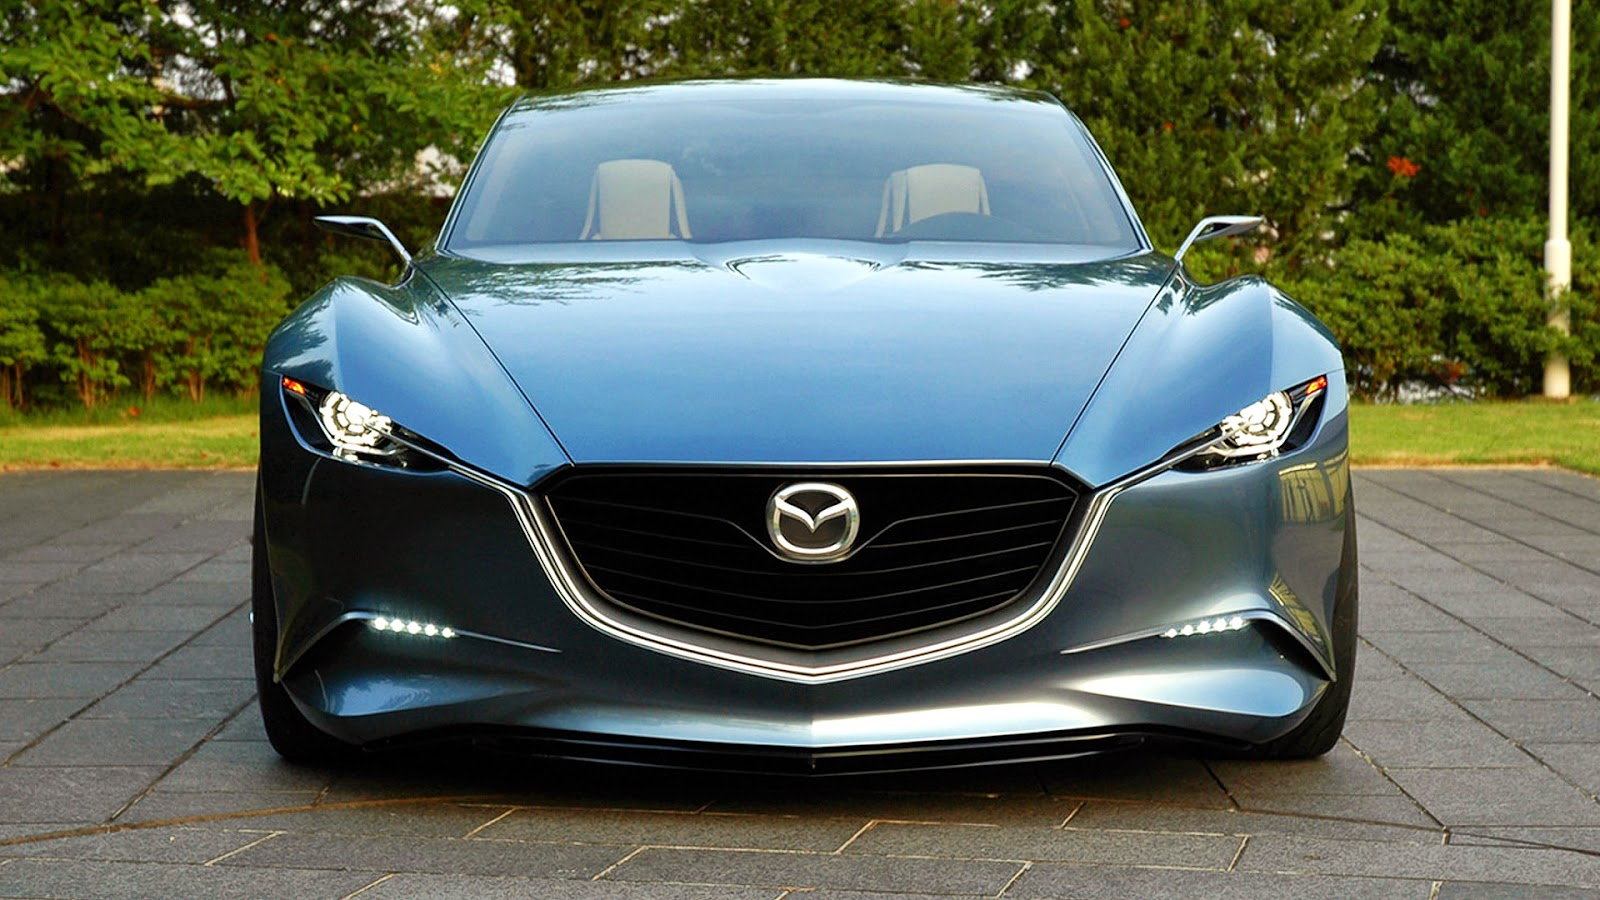 Cars Wallpapers: Mazda Shinari On Hd Wallpaper